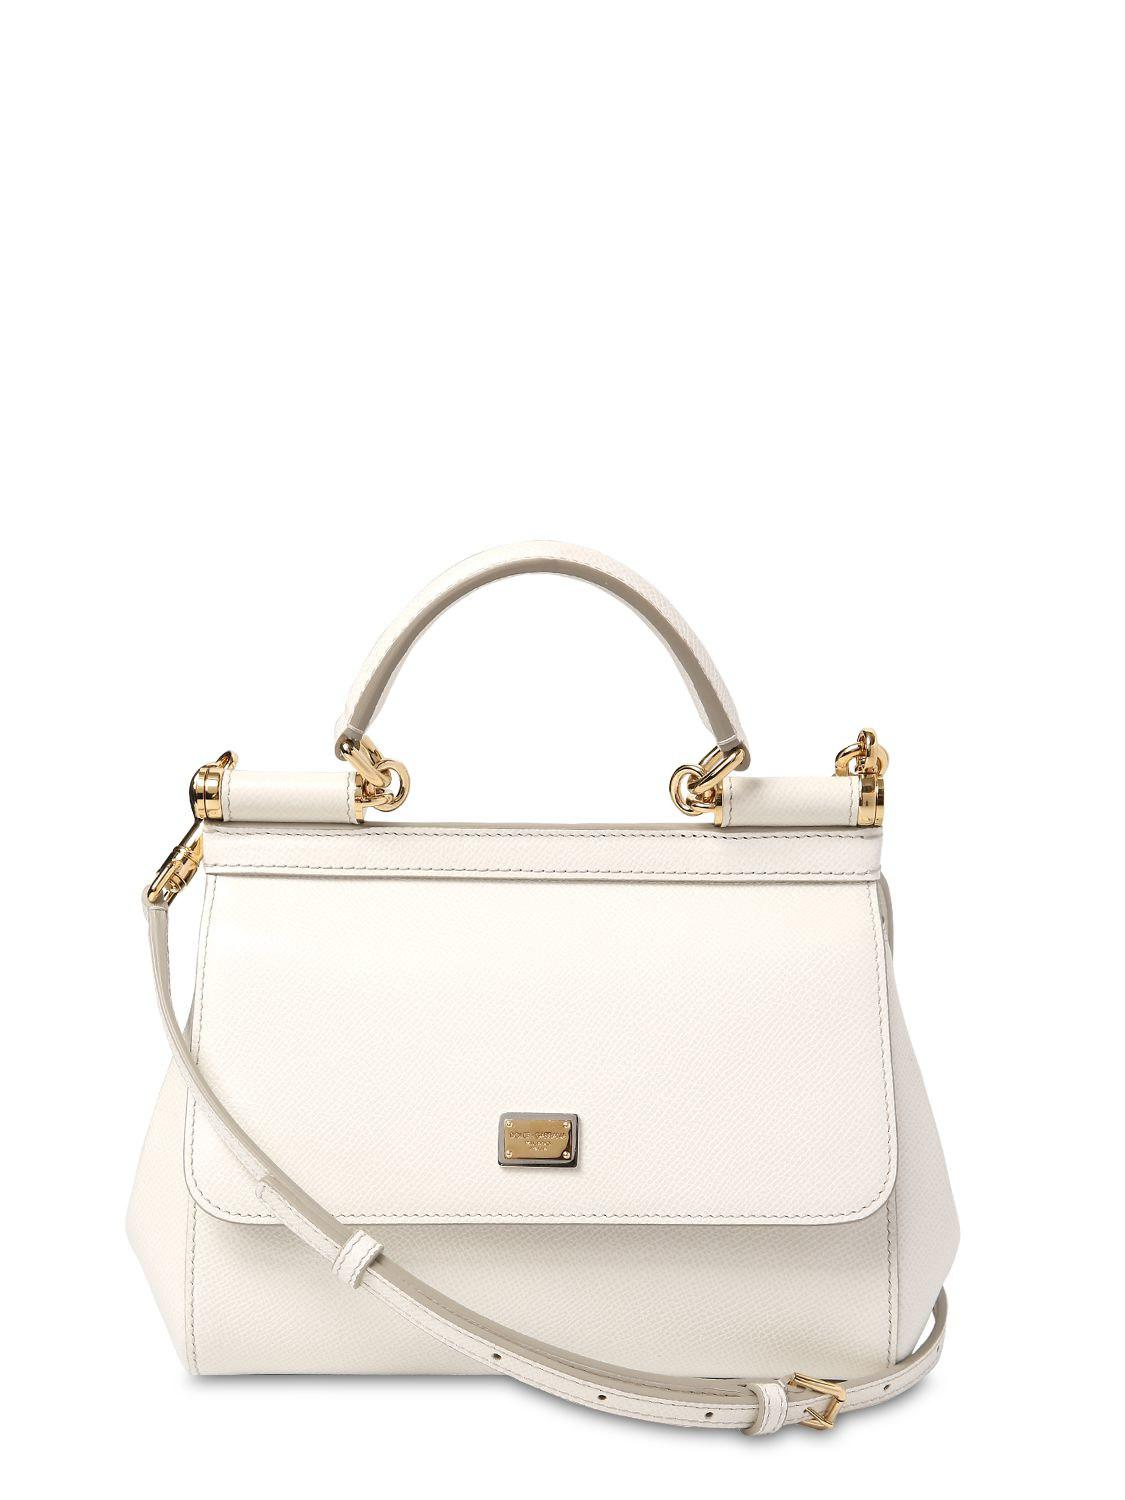 60f8c6a09b Lyst - Dolce   Gabbana Small Sicily Dauphine Leather Bag in White